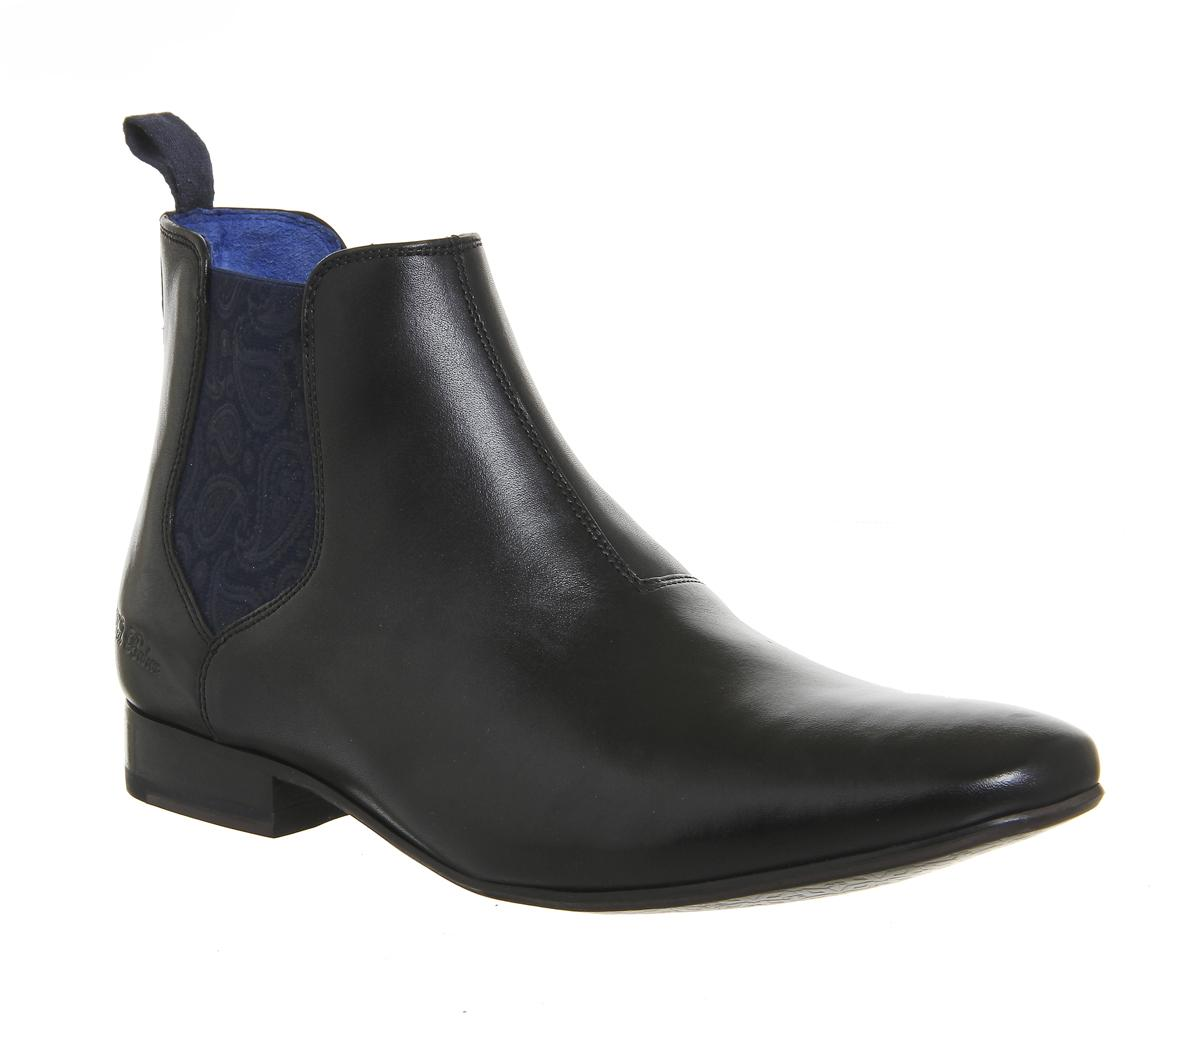 Hourb 2 Chelsea Boots